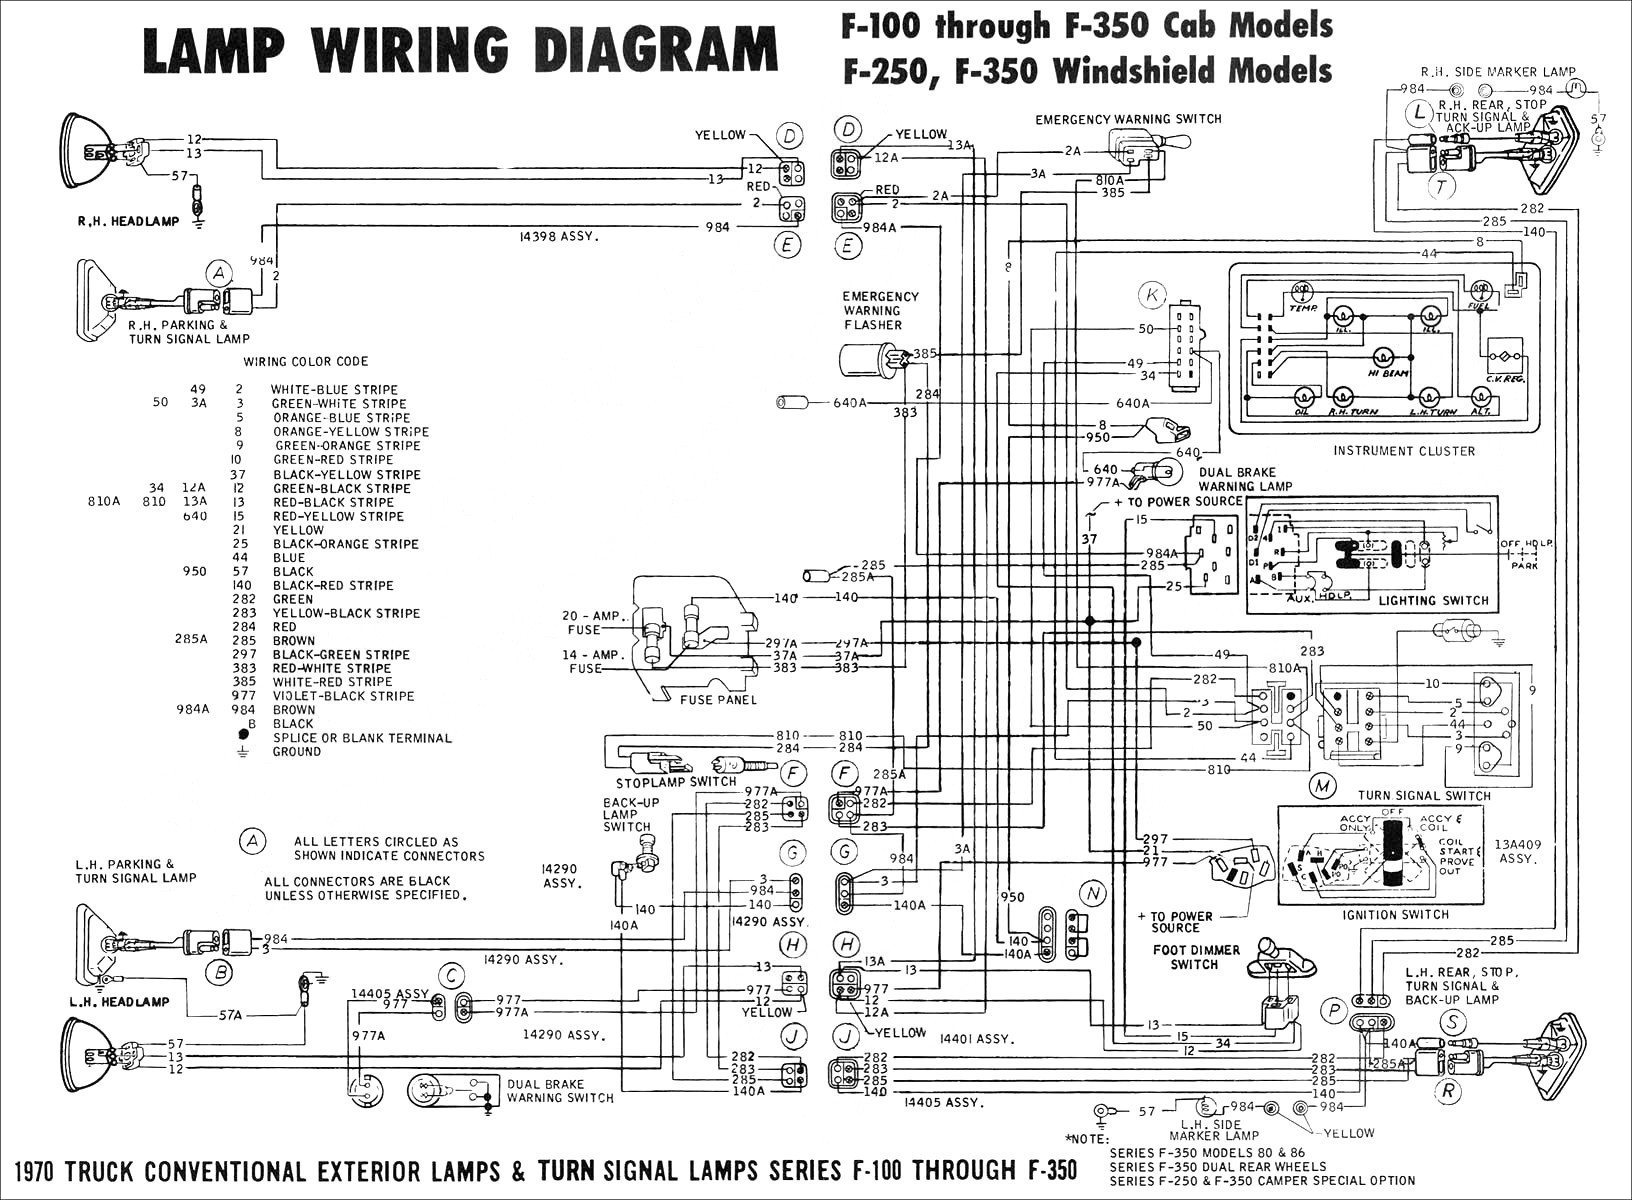 2002 Mitsubishi Eclipse Stereo Wiring Diagram Audi A4 Stereo Wiring Diagram Download 2002 Mitsubishi Eclipse